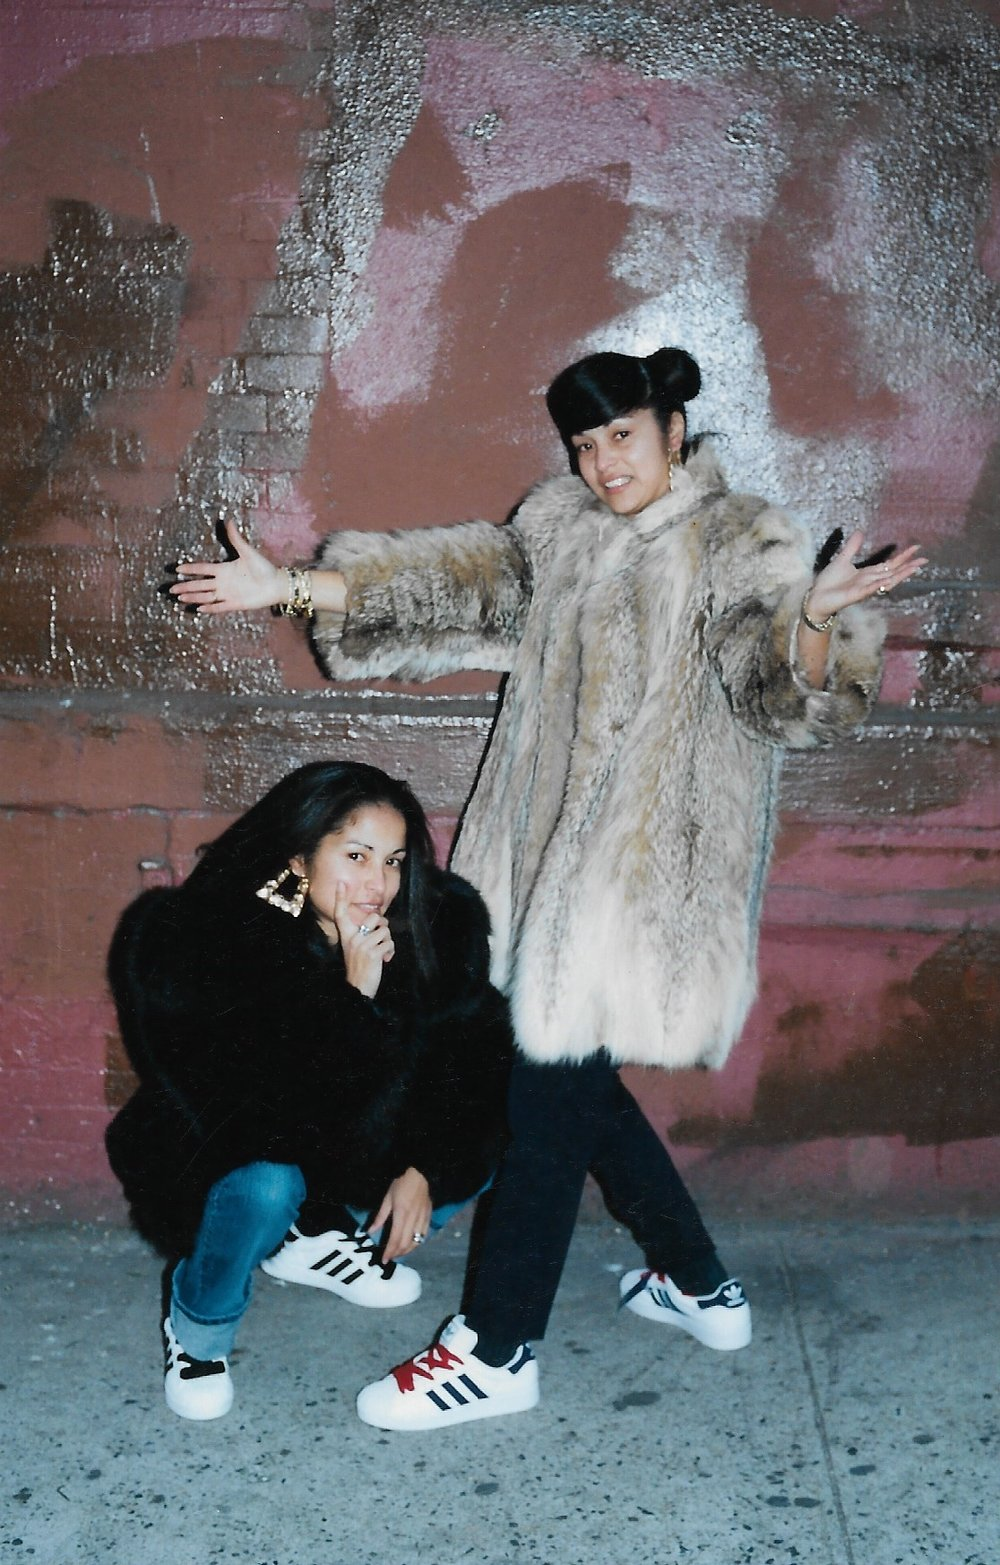 Jamel Shabazz ,  Sisters SoHo, NYC , 2003. Photo print. Courtesy of the artist. Photo:  Jamel Shabazz . From upcoming exhibition   RESPECT: Hip-Hop Style & Wisdom  .